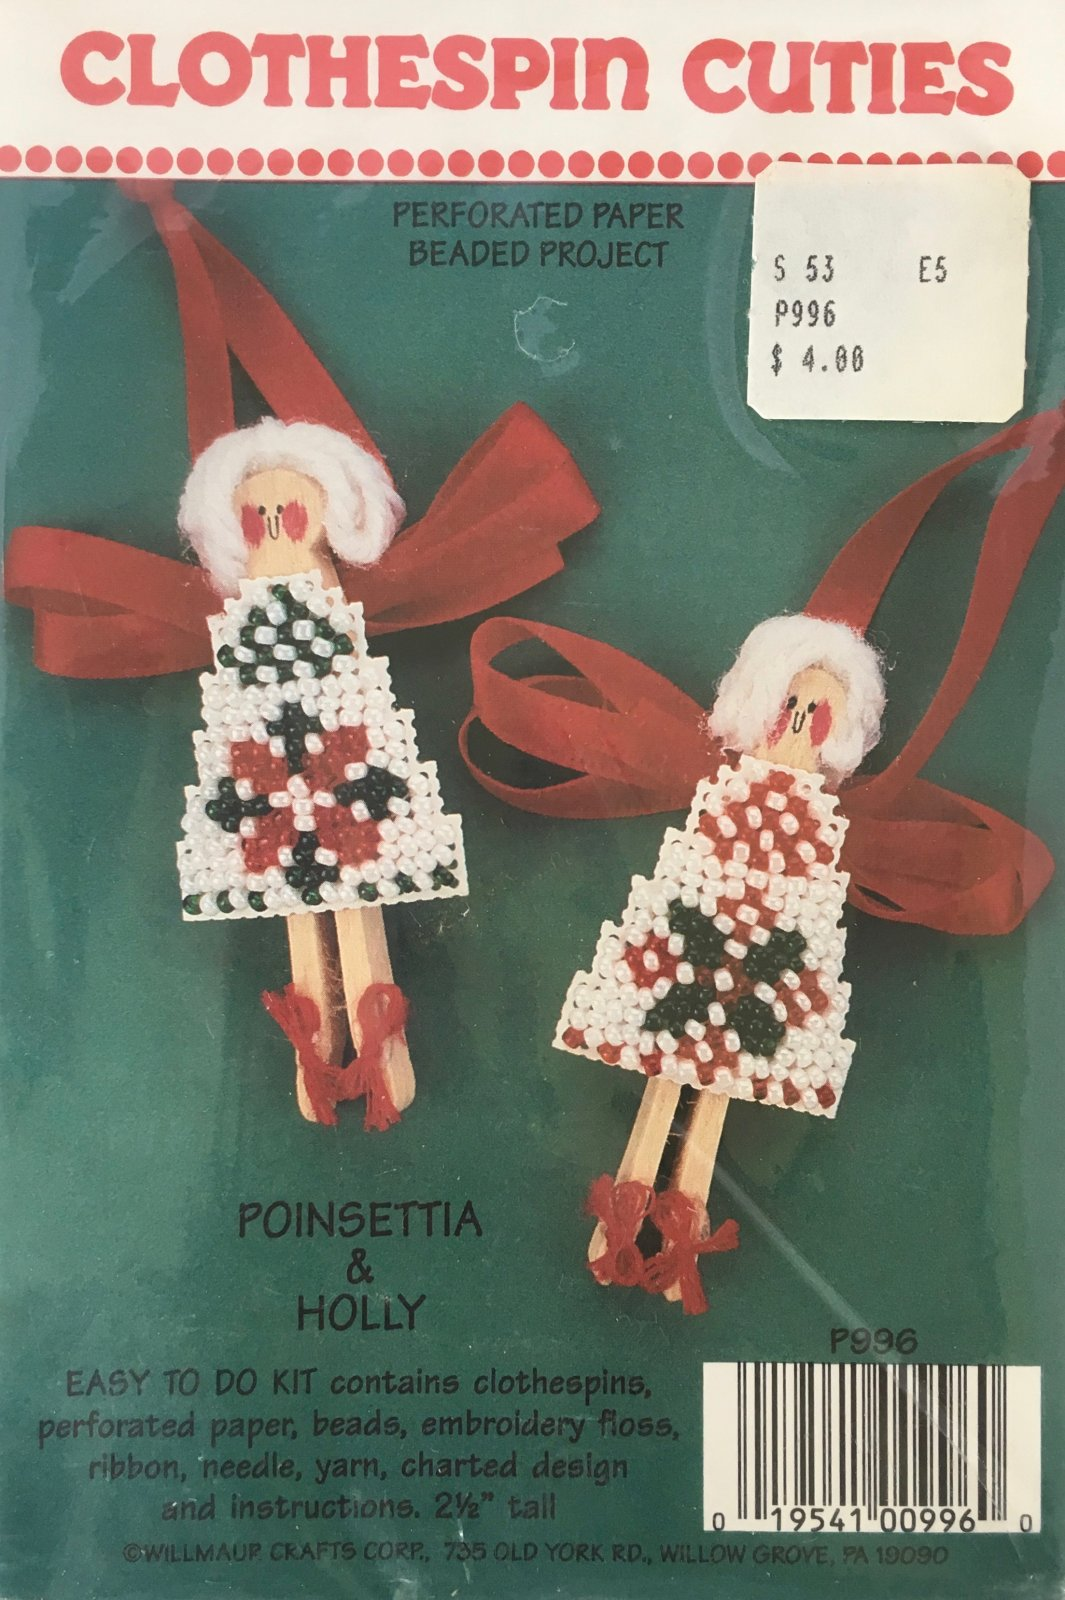 Astor Place: Clothespin Cuties Poinsettia & Holly Kit P996